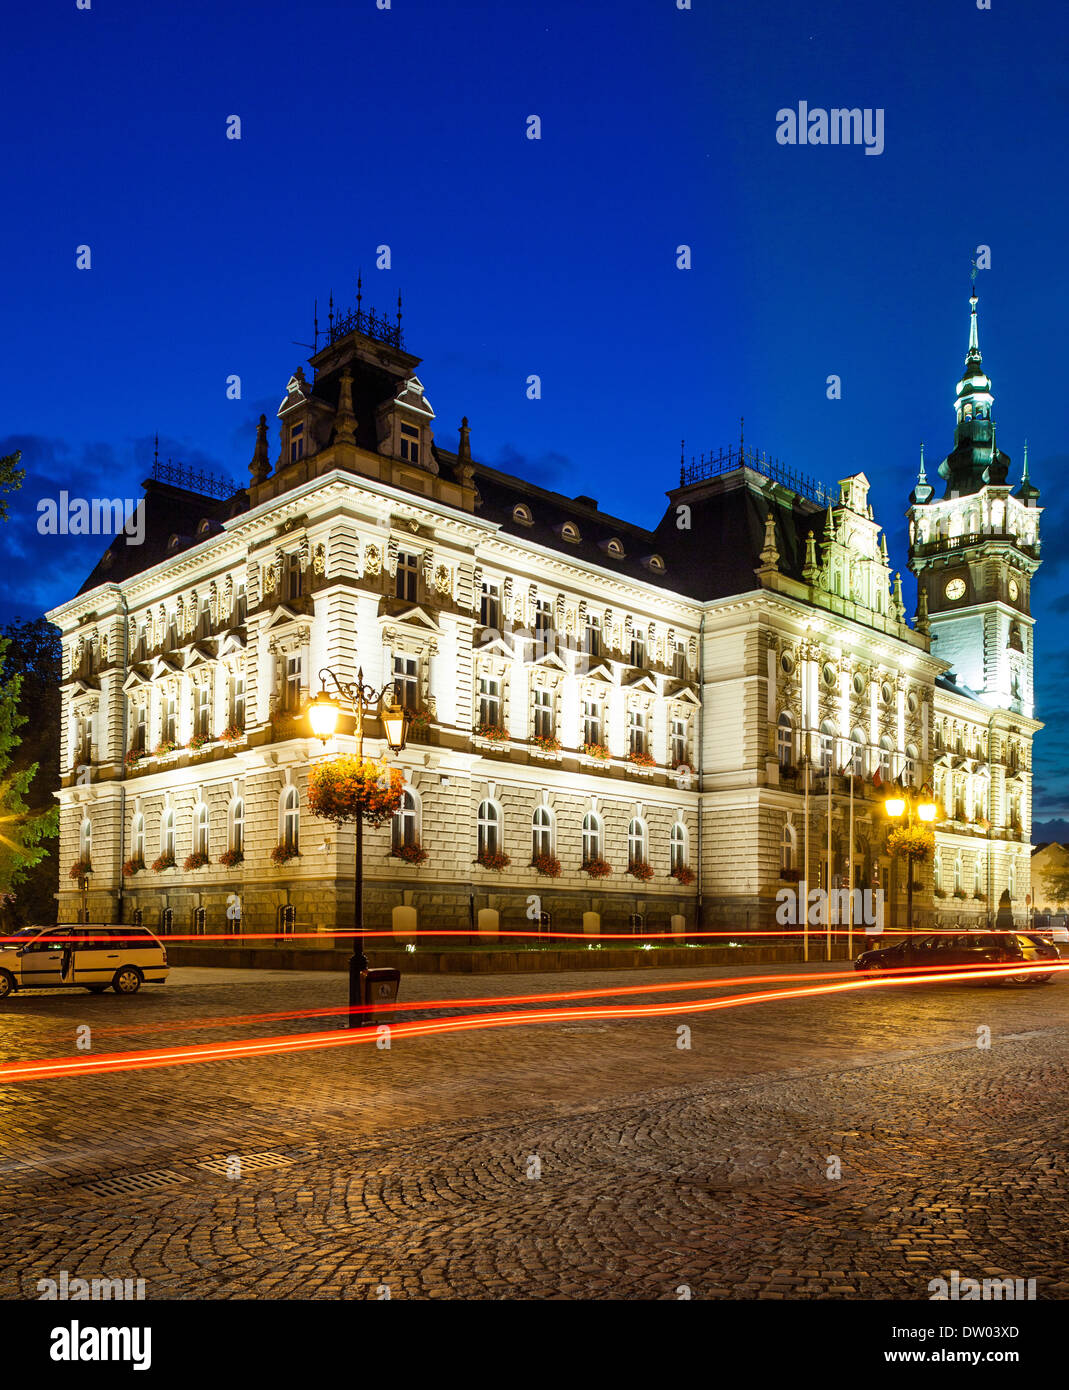 Night view of the Neo-Renaissance town hall in Bielsko-Biala, Poland. - Stock Image